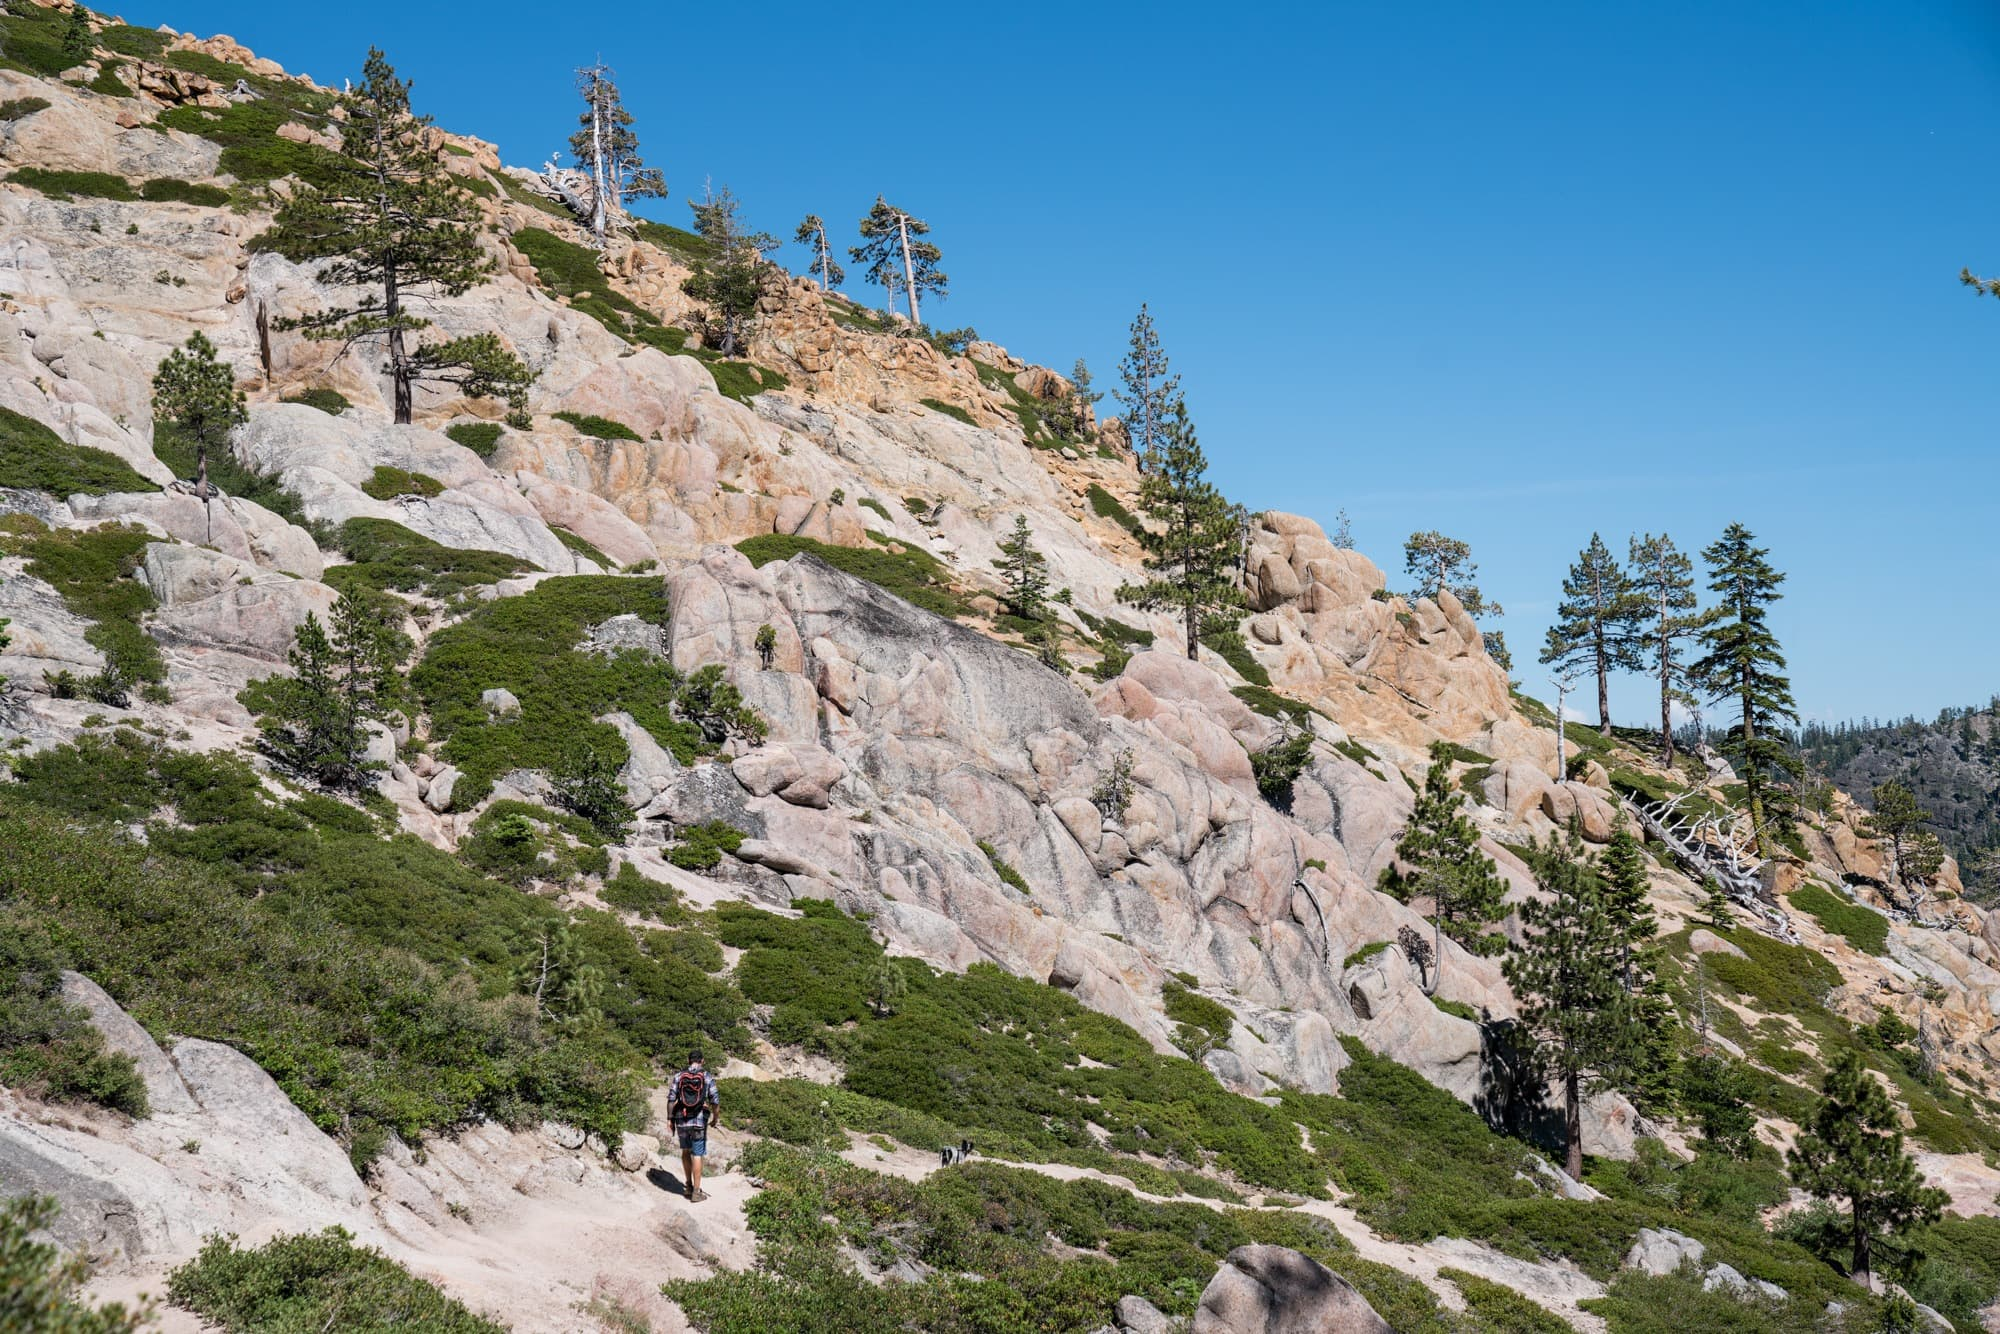 5 Lakes Basin Trail // Planning an adventure-packed vacation to Lake Tahoe? Here are 12 of the best things to do around Lake Tahoe for the outdoor enthusiast.